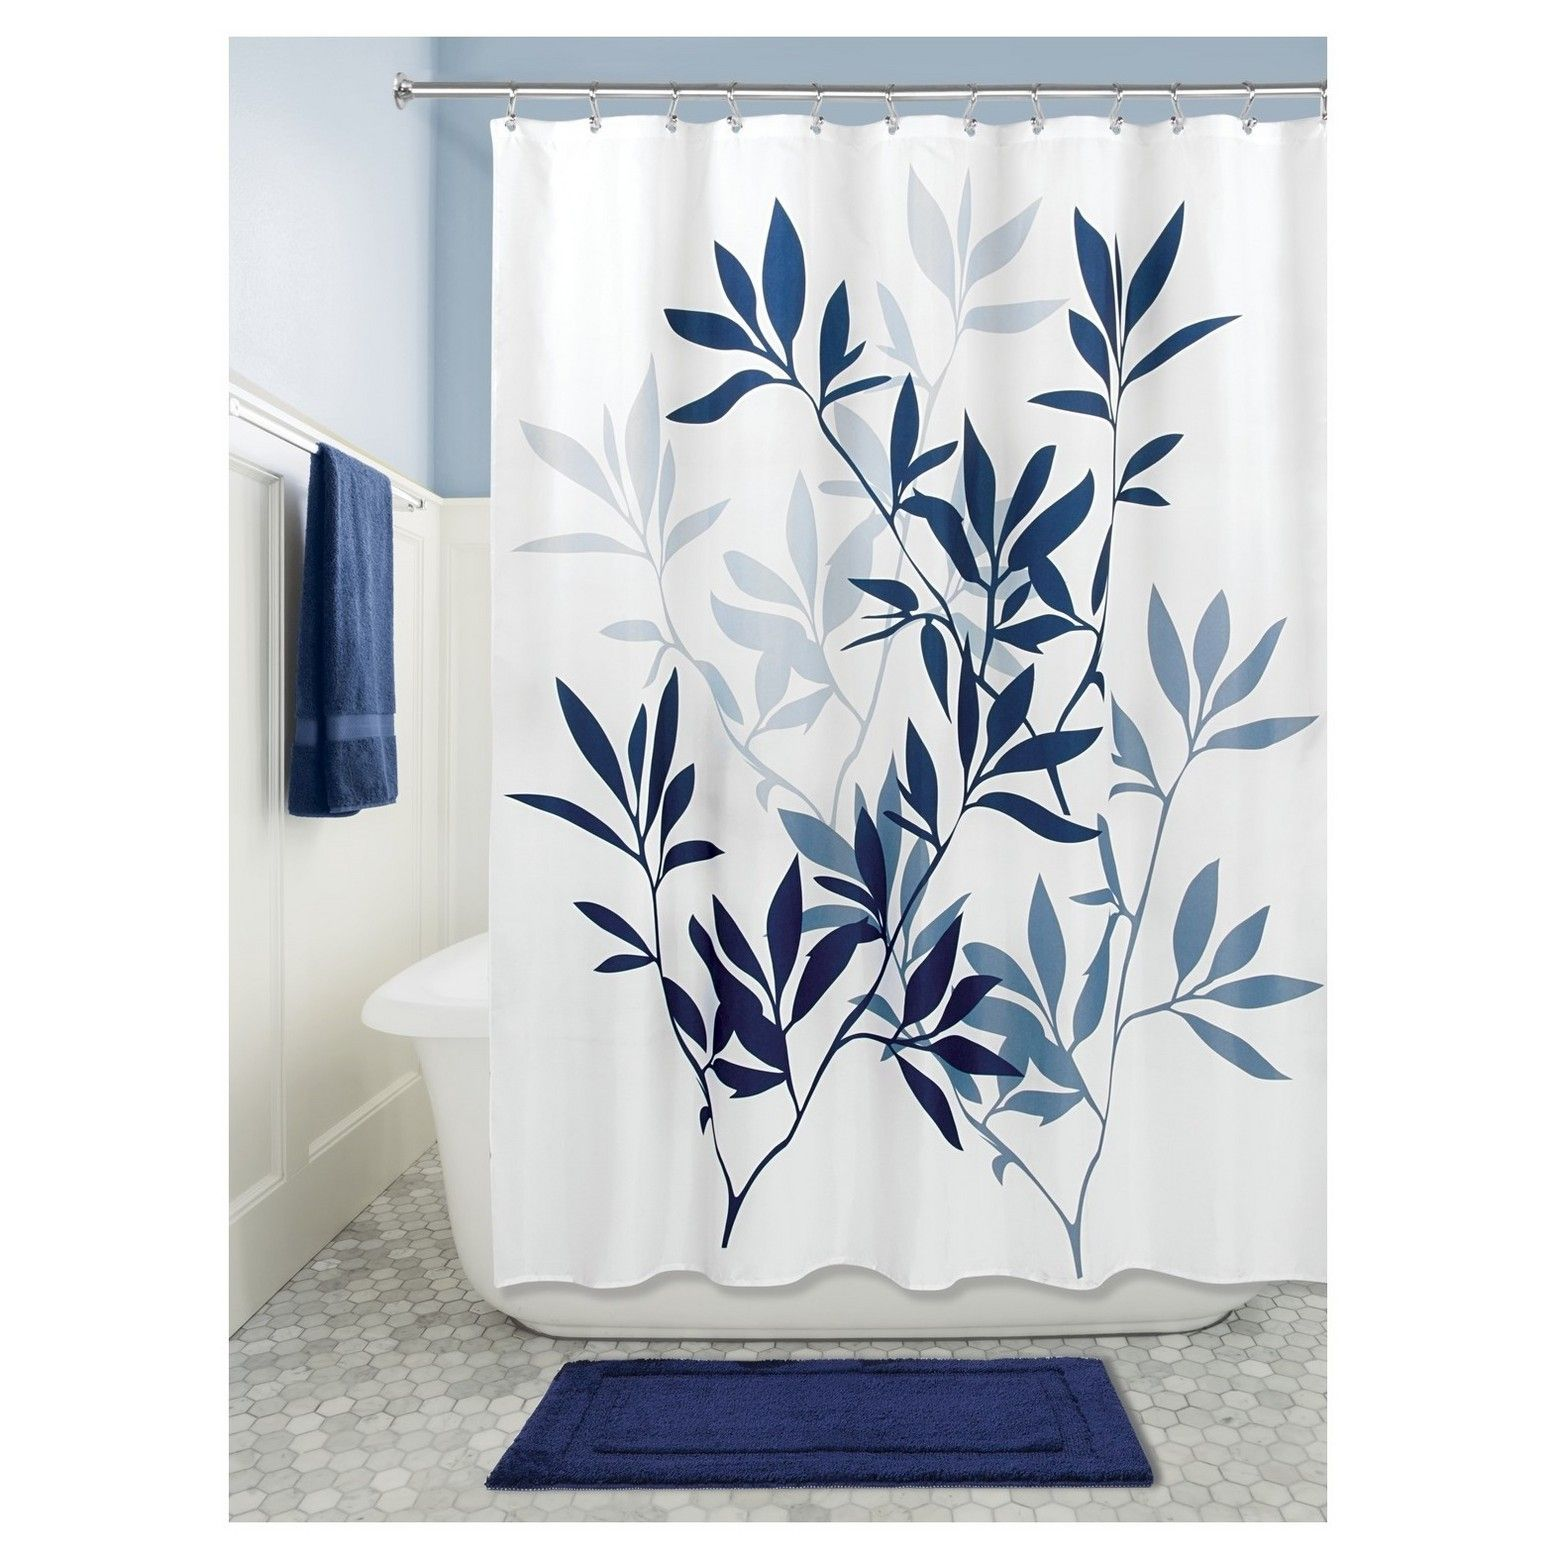 Leaves Shower Curtain Idesign Fabric Shower Curtains White